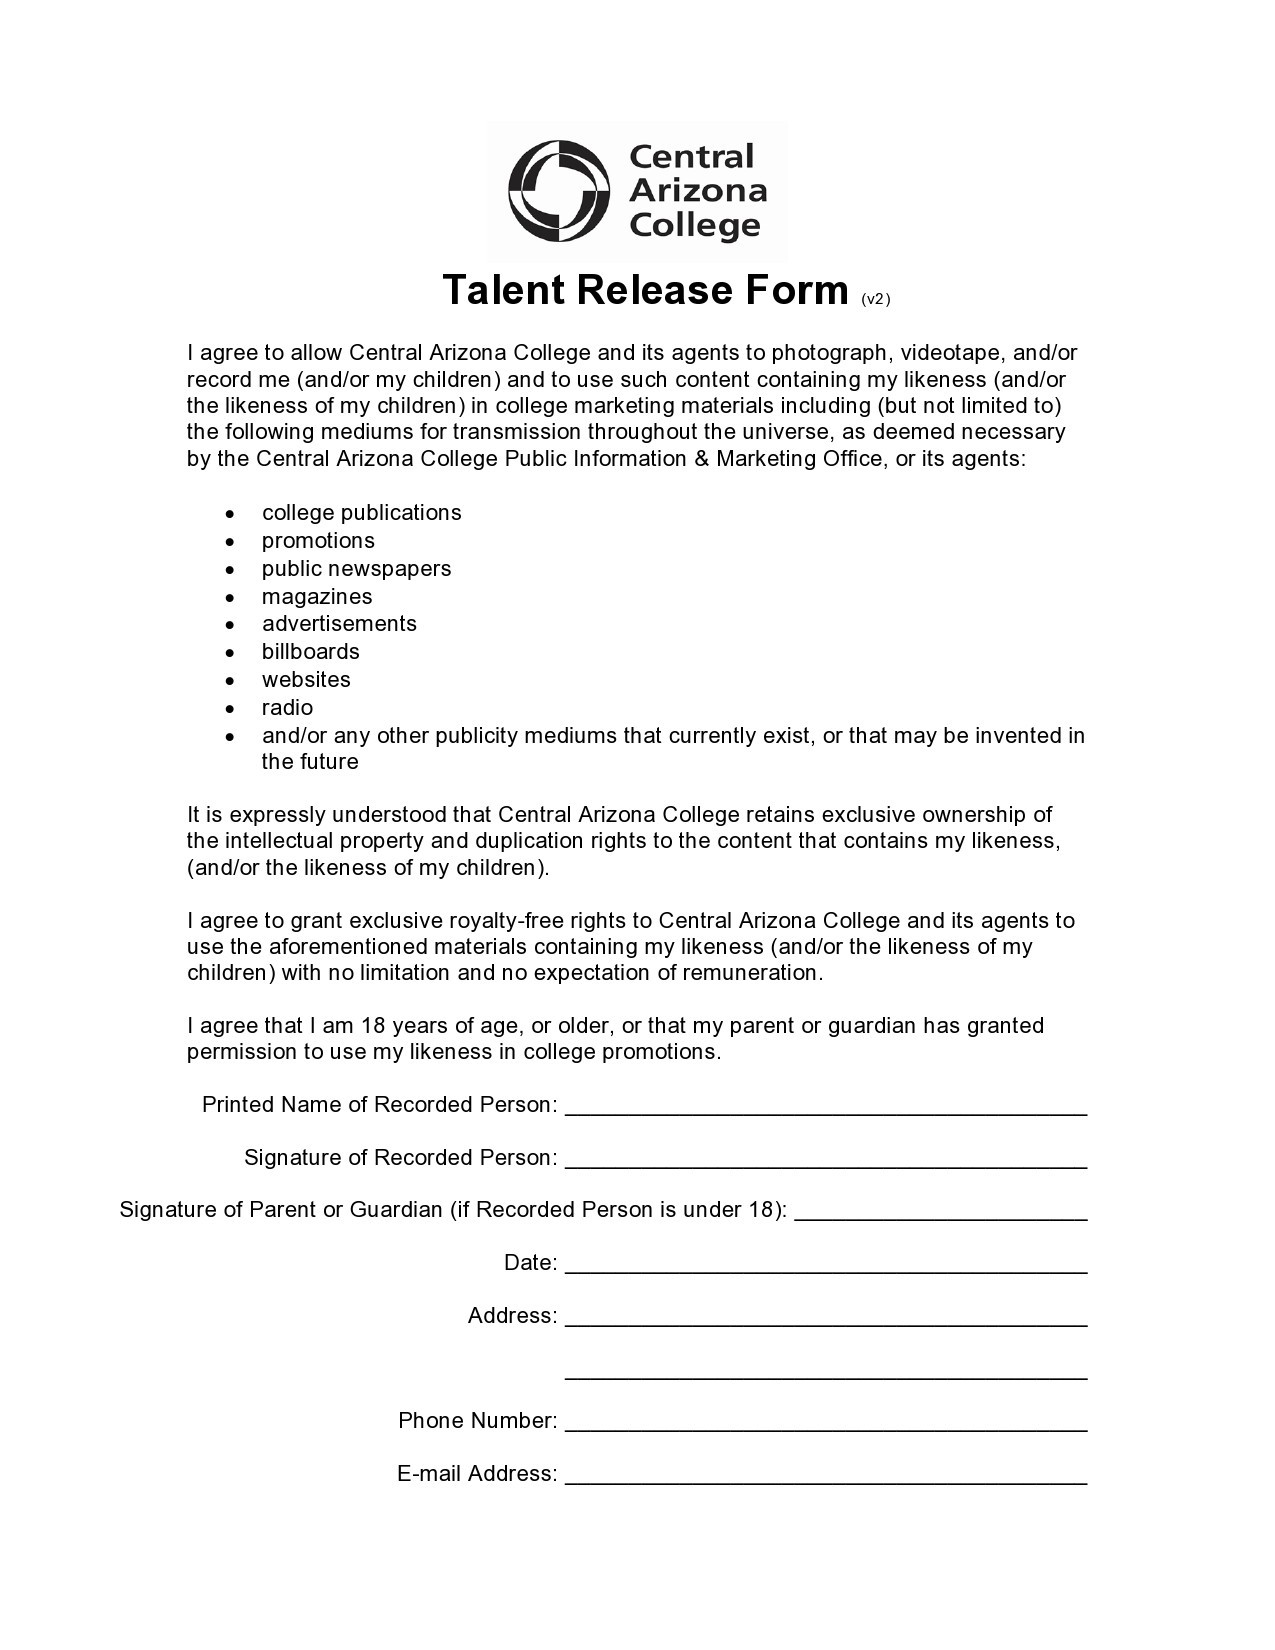 Free talent release form 11